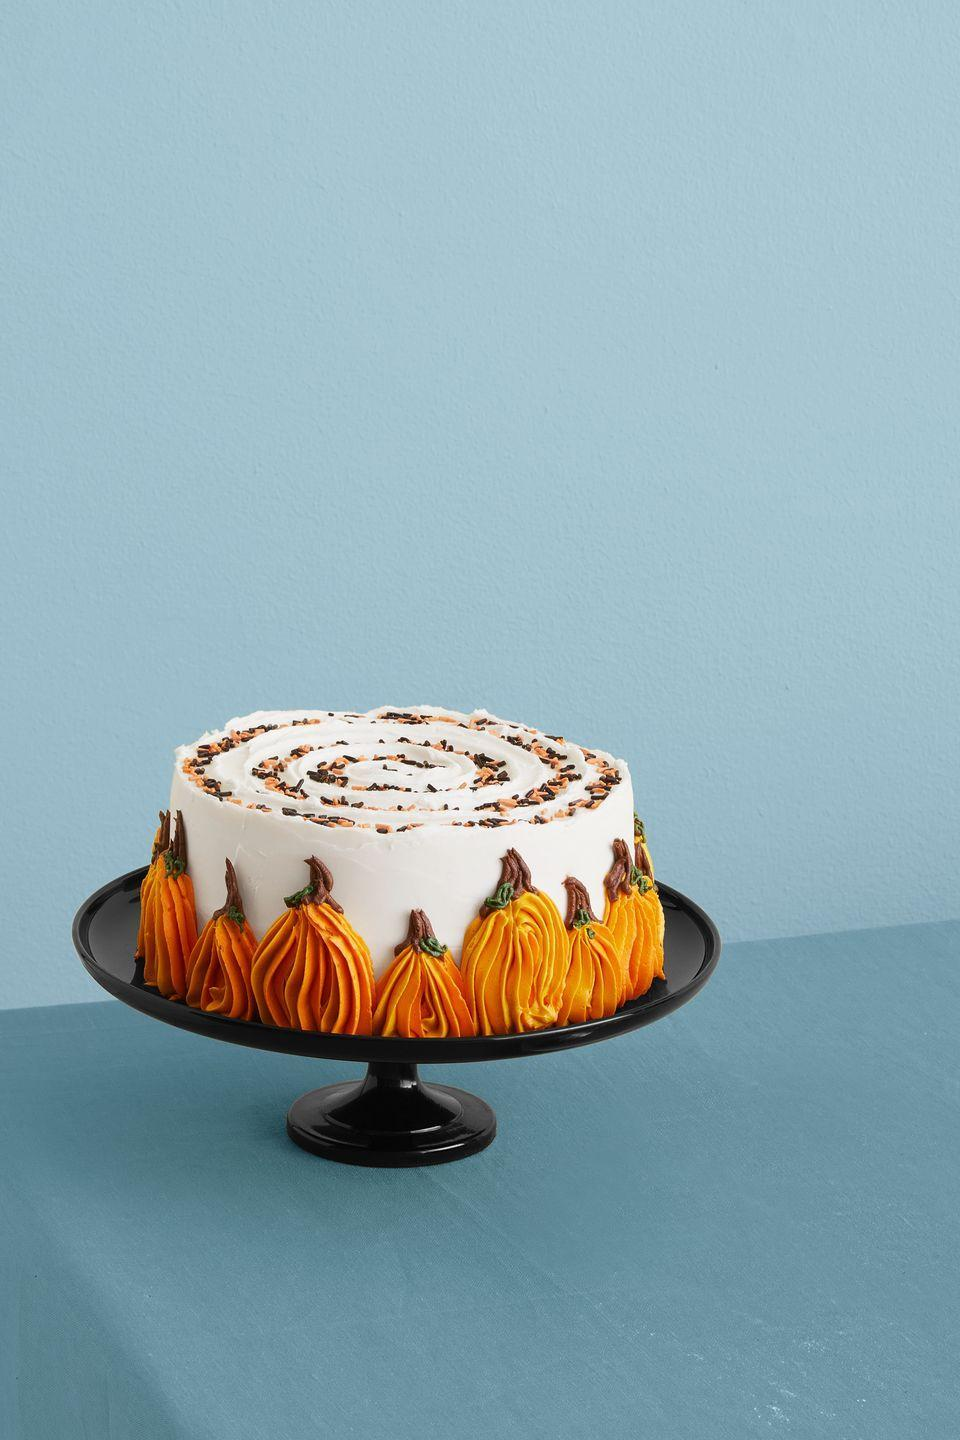 """<p>If you have a knack for decoration, then you'll love tackling the icing pumpkins on this fall-flavored cake.</p><p><strong><em><a href=""""https://www.womansday.com/food-recipes/a33564114/pumpkin-chocolate-chip-cake-recioe/"""" rel=""""nofollow noopener"""" target=""""_blank"""" data-ylk=""""slk:Get the Pumpkin Chocolate Chip Cake recipe."""" class=""""link rapid-noclick-resp"""">Get the Pumpkin Chocolate Chip Cake recipe.</a></em></strong></p>"""